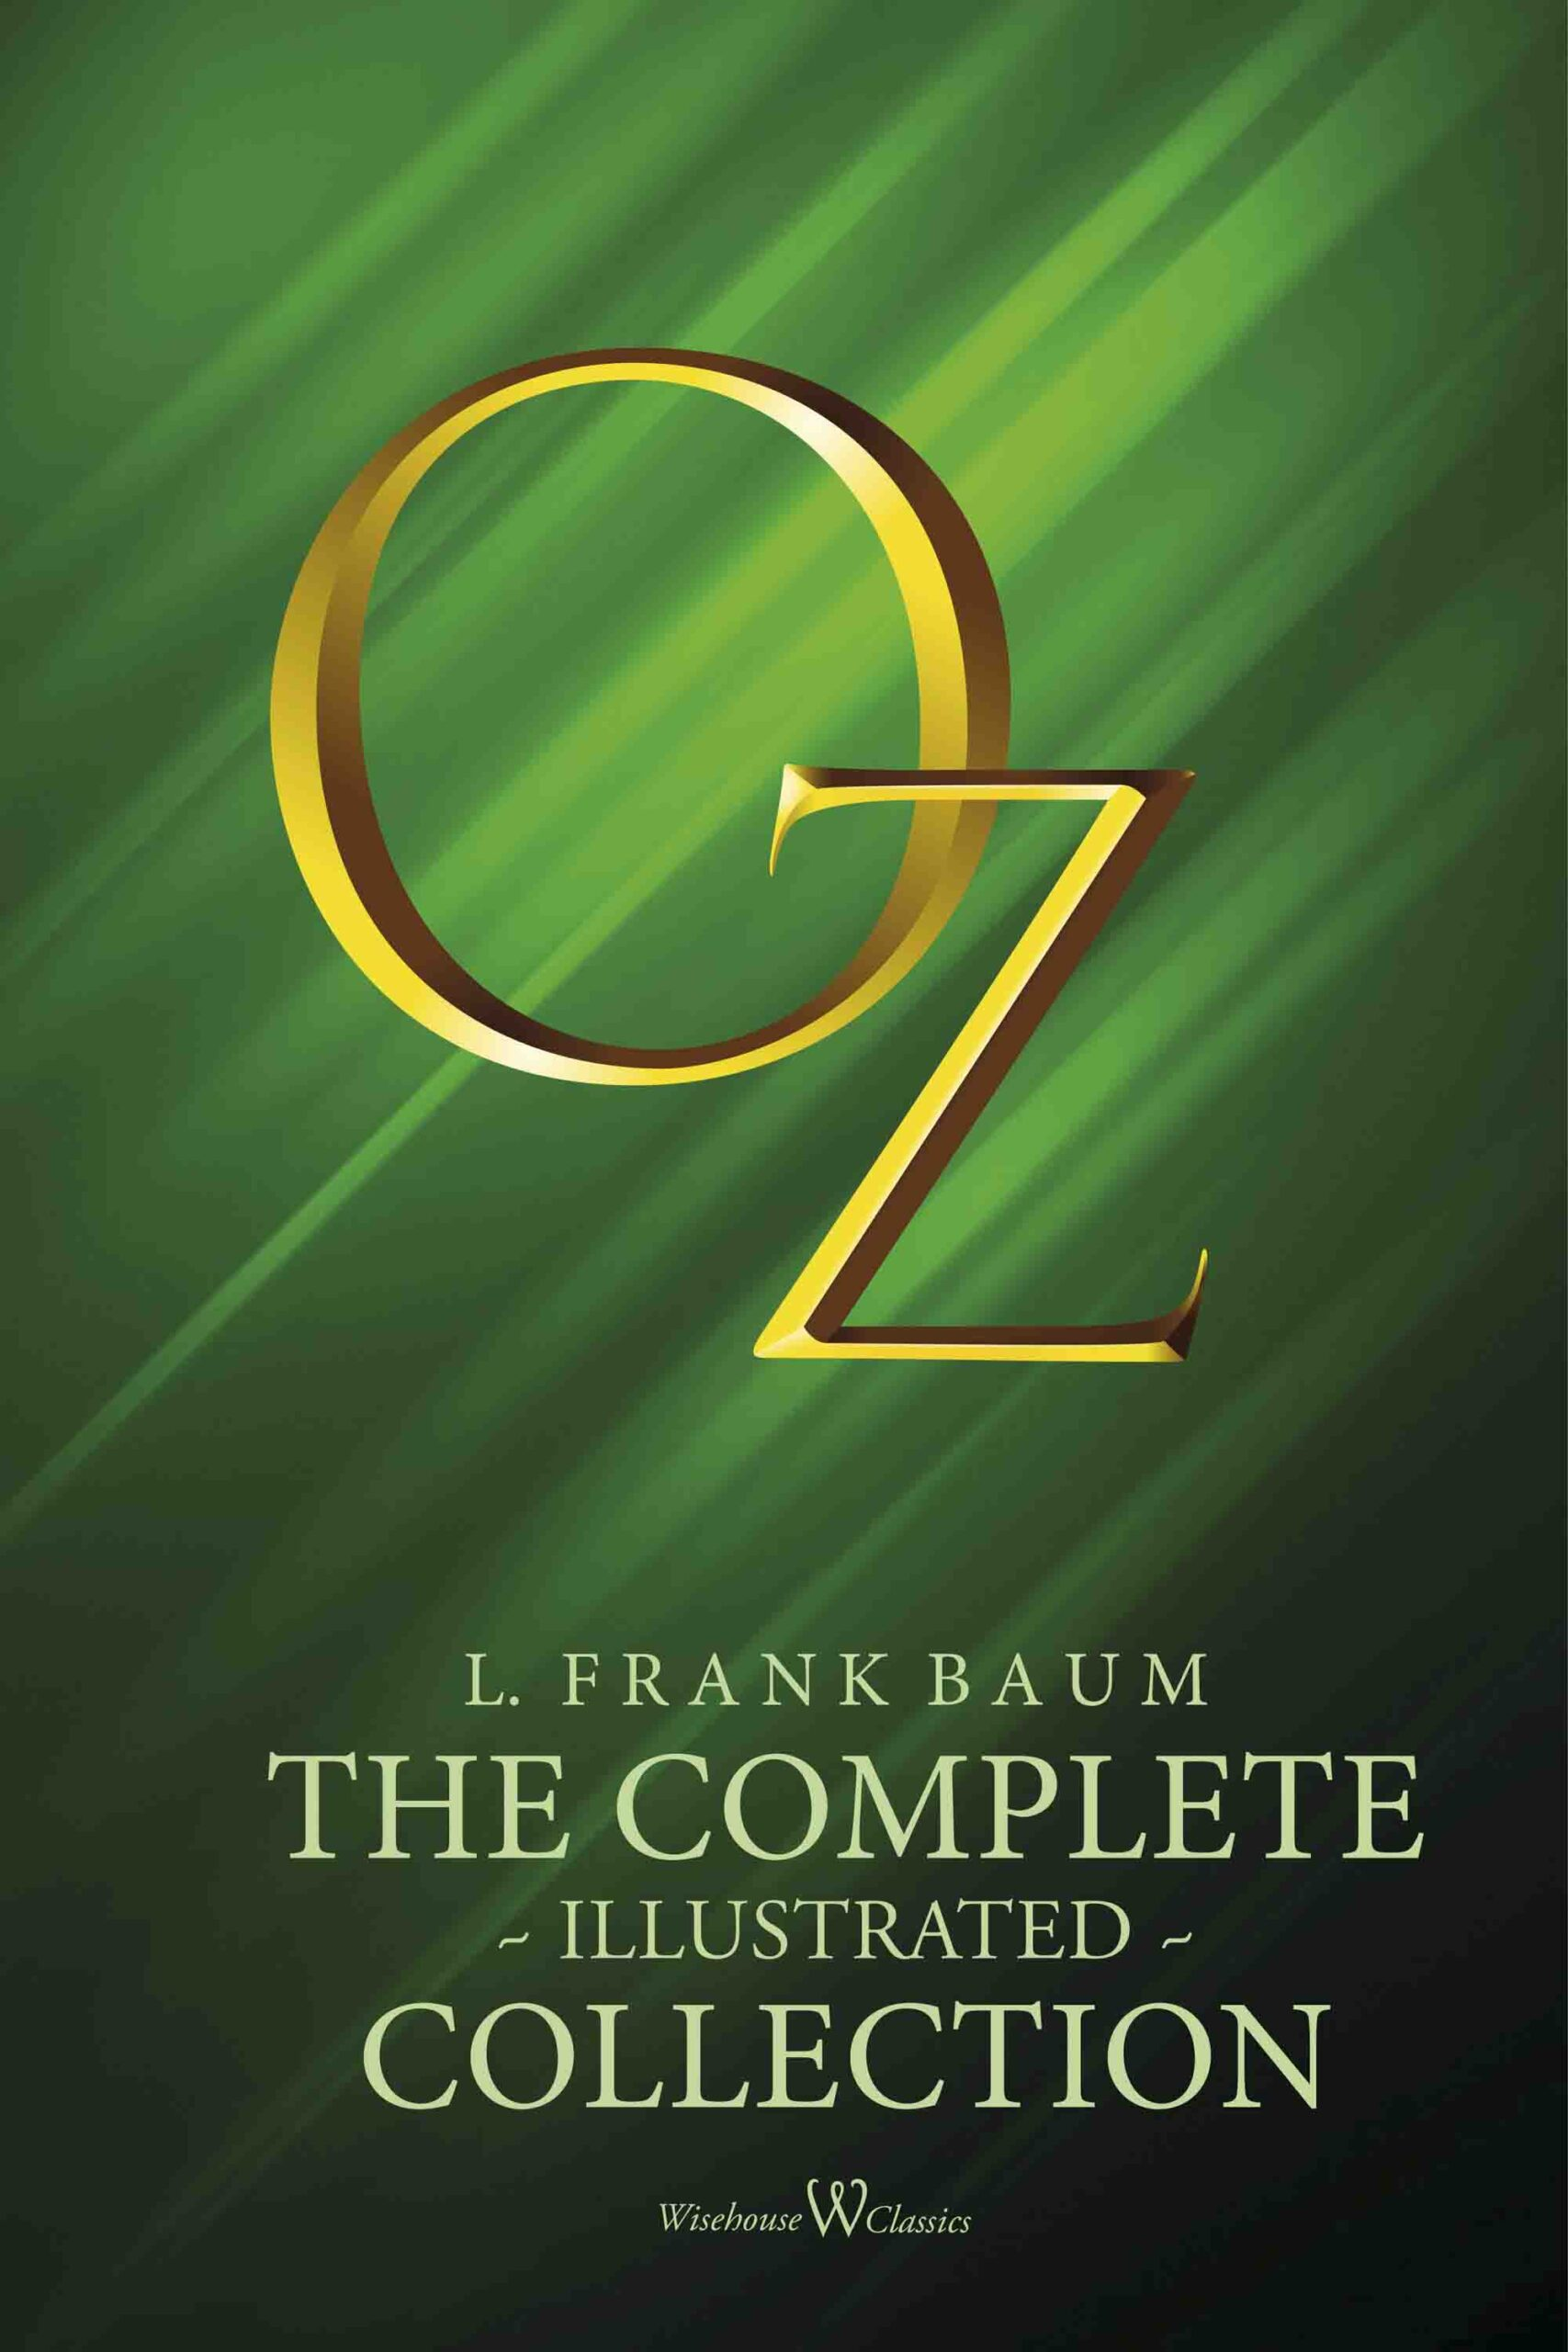 OZ: The complete illustrated collection